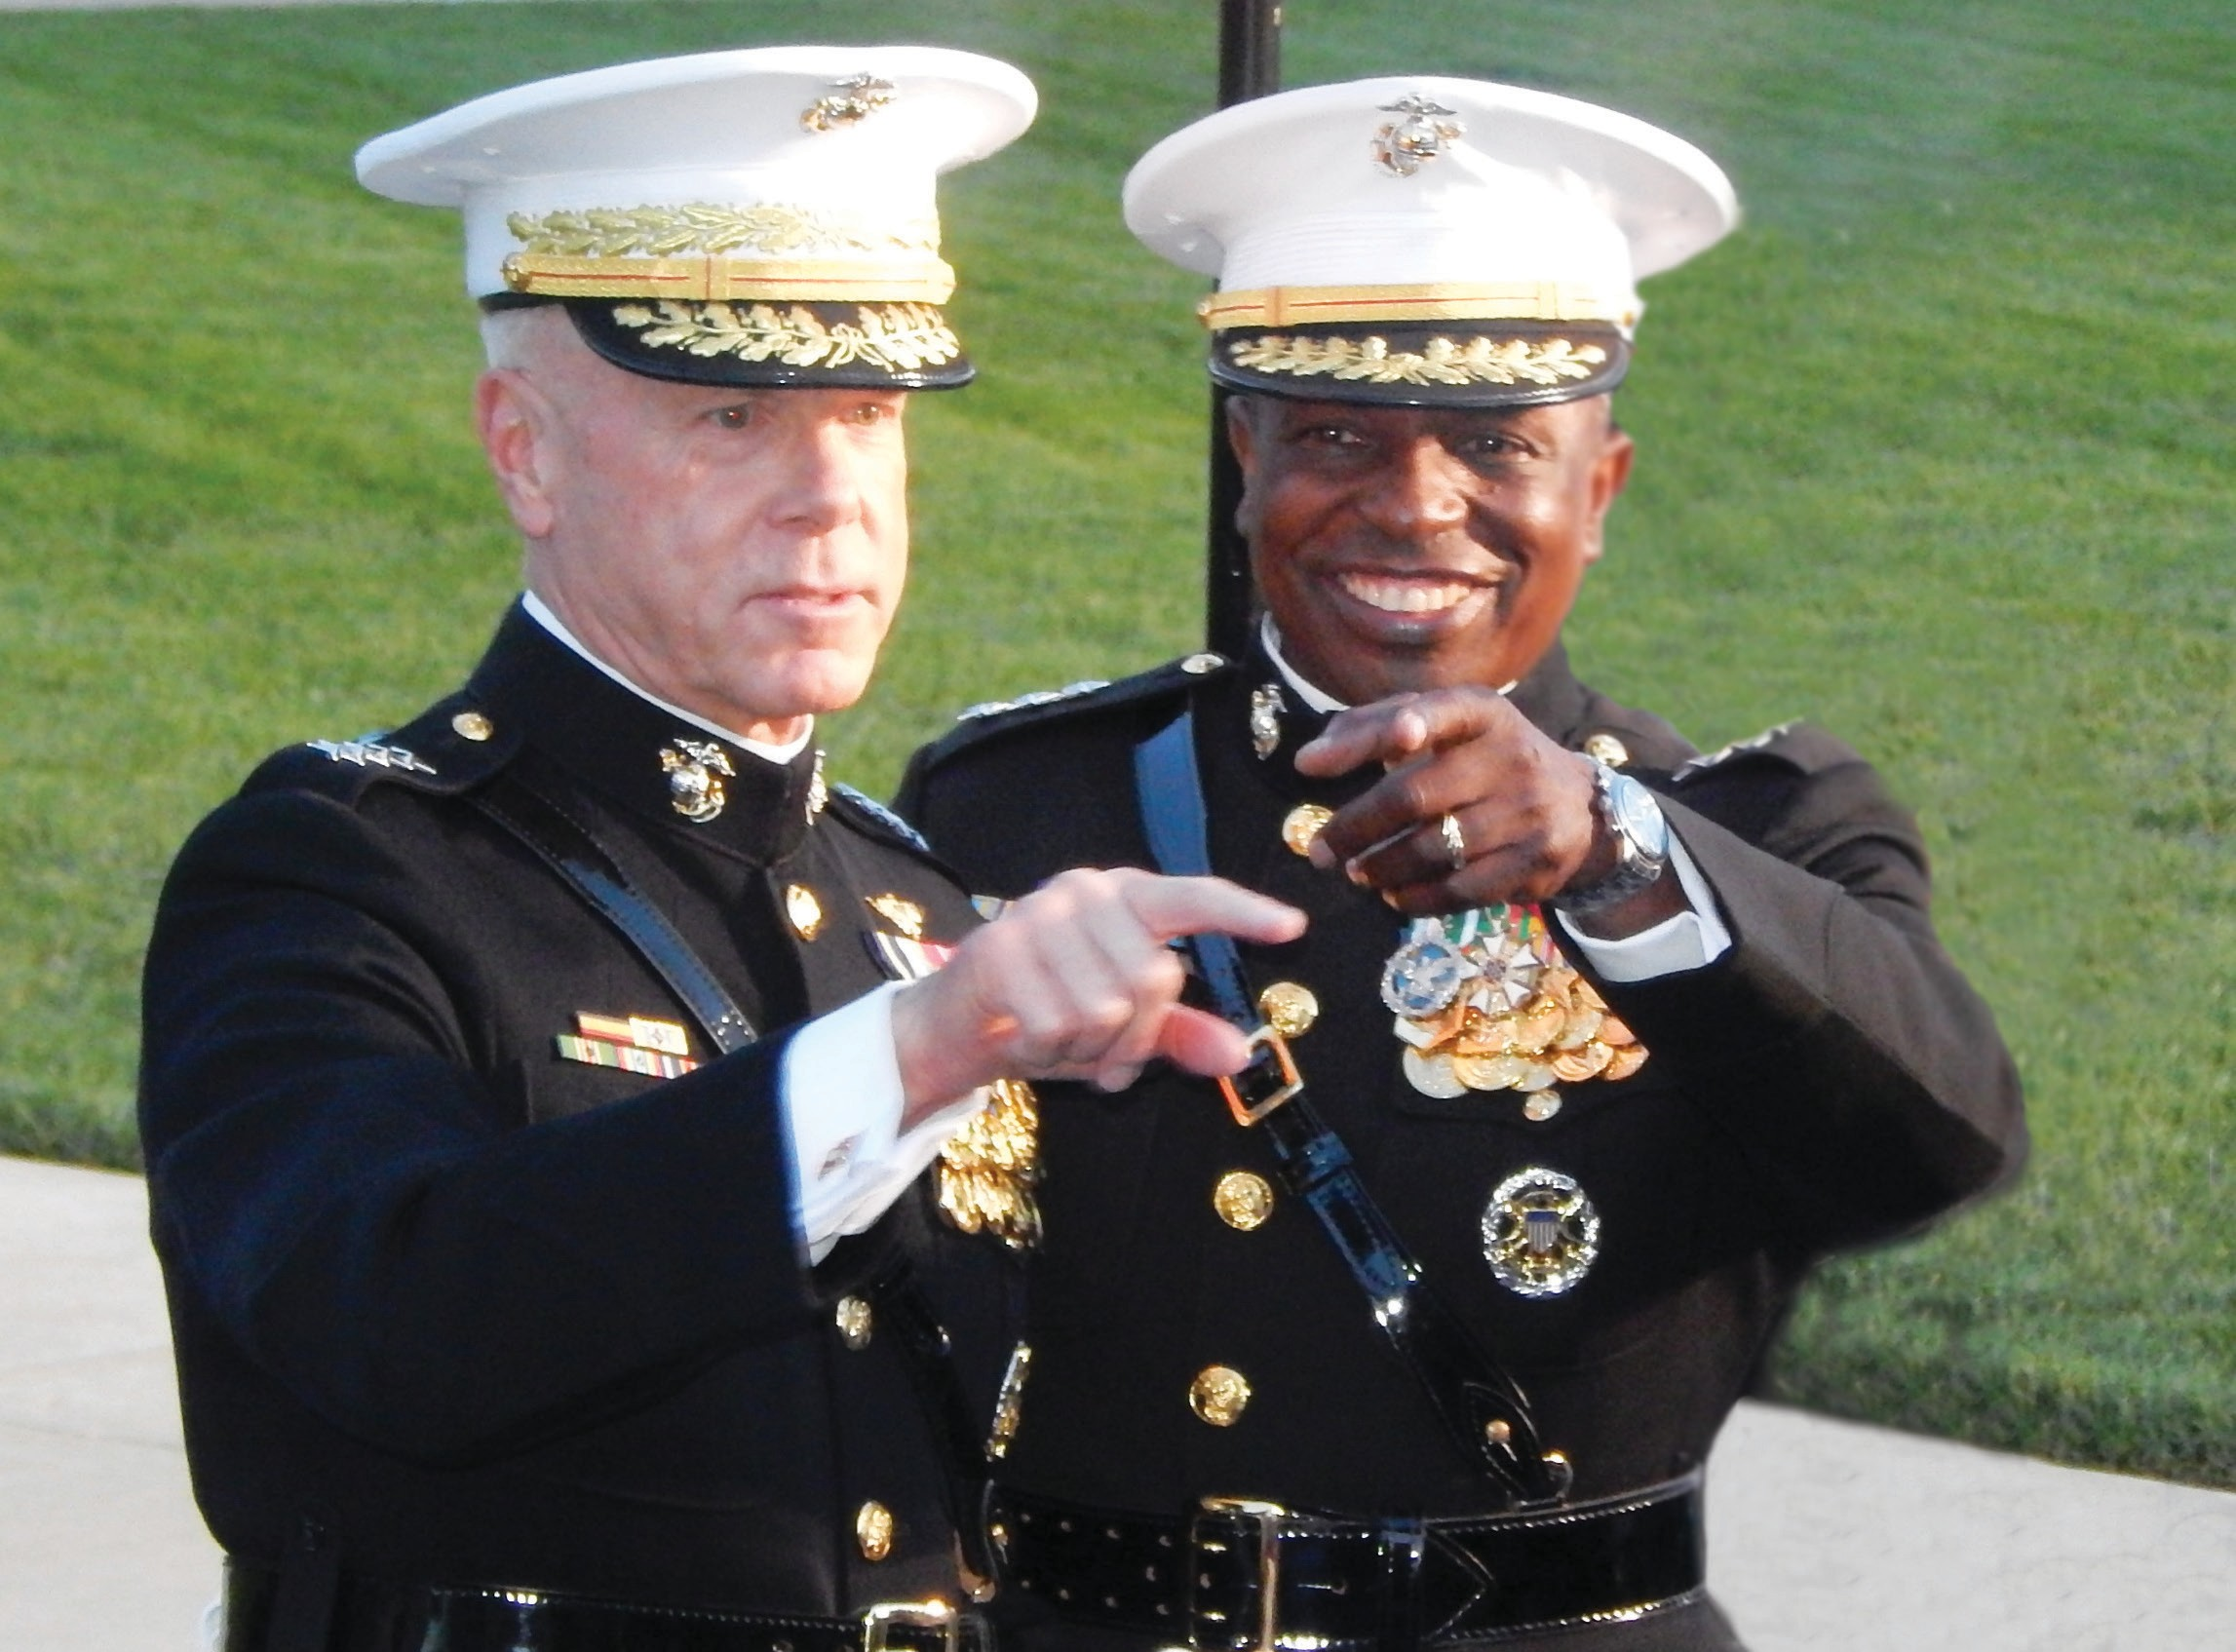 (L-R) 35th Commandant General James. F Amos with Lt. General Walter G. Gaskin